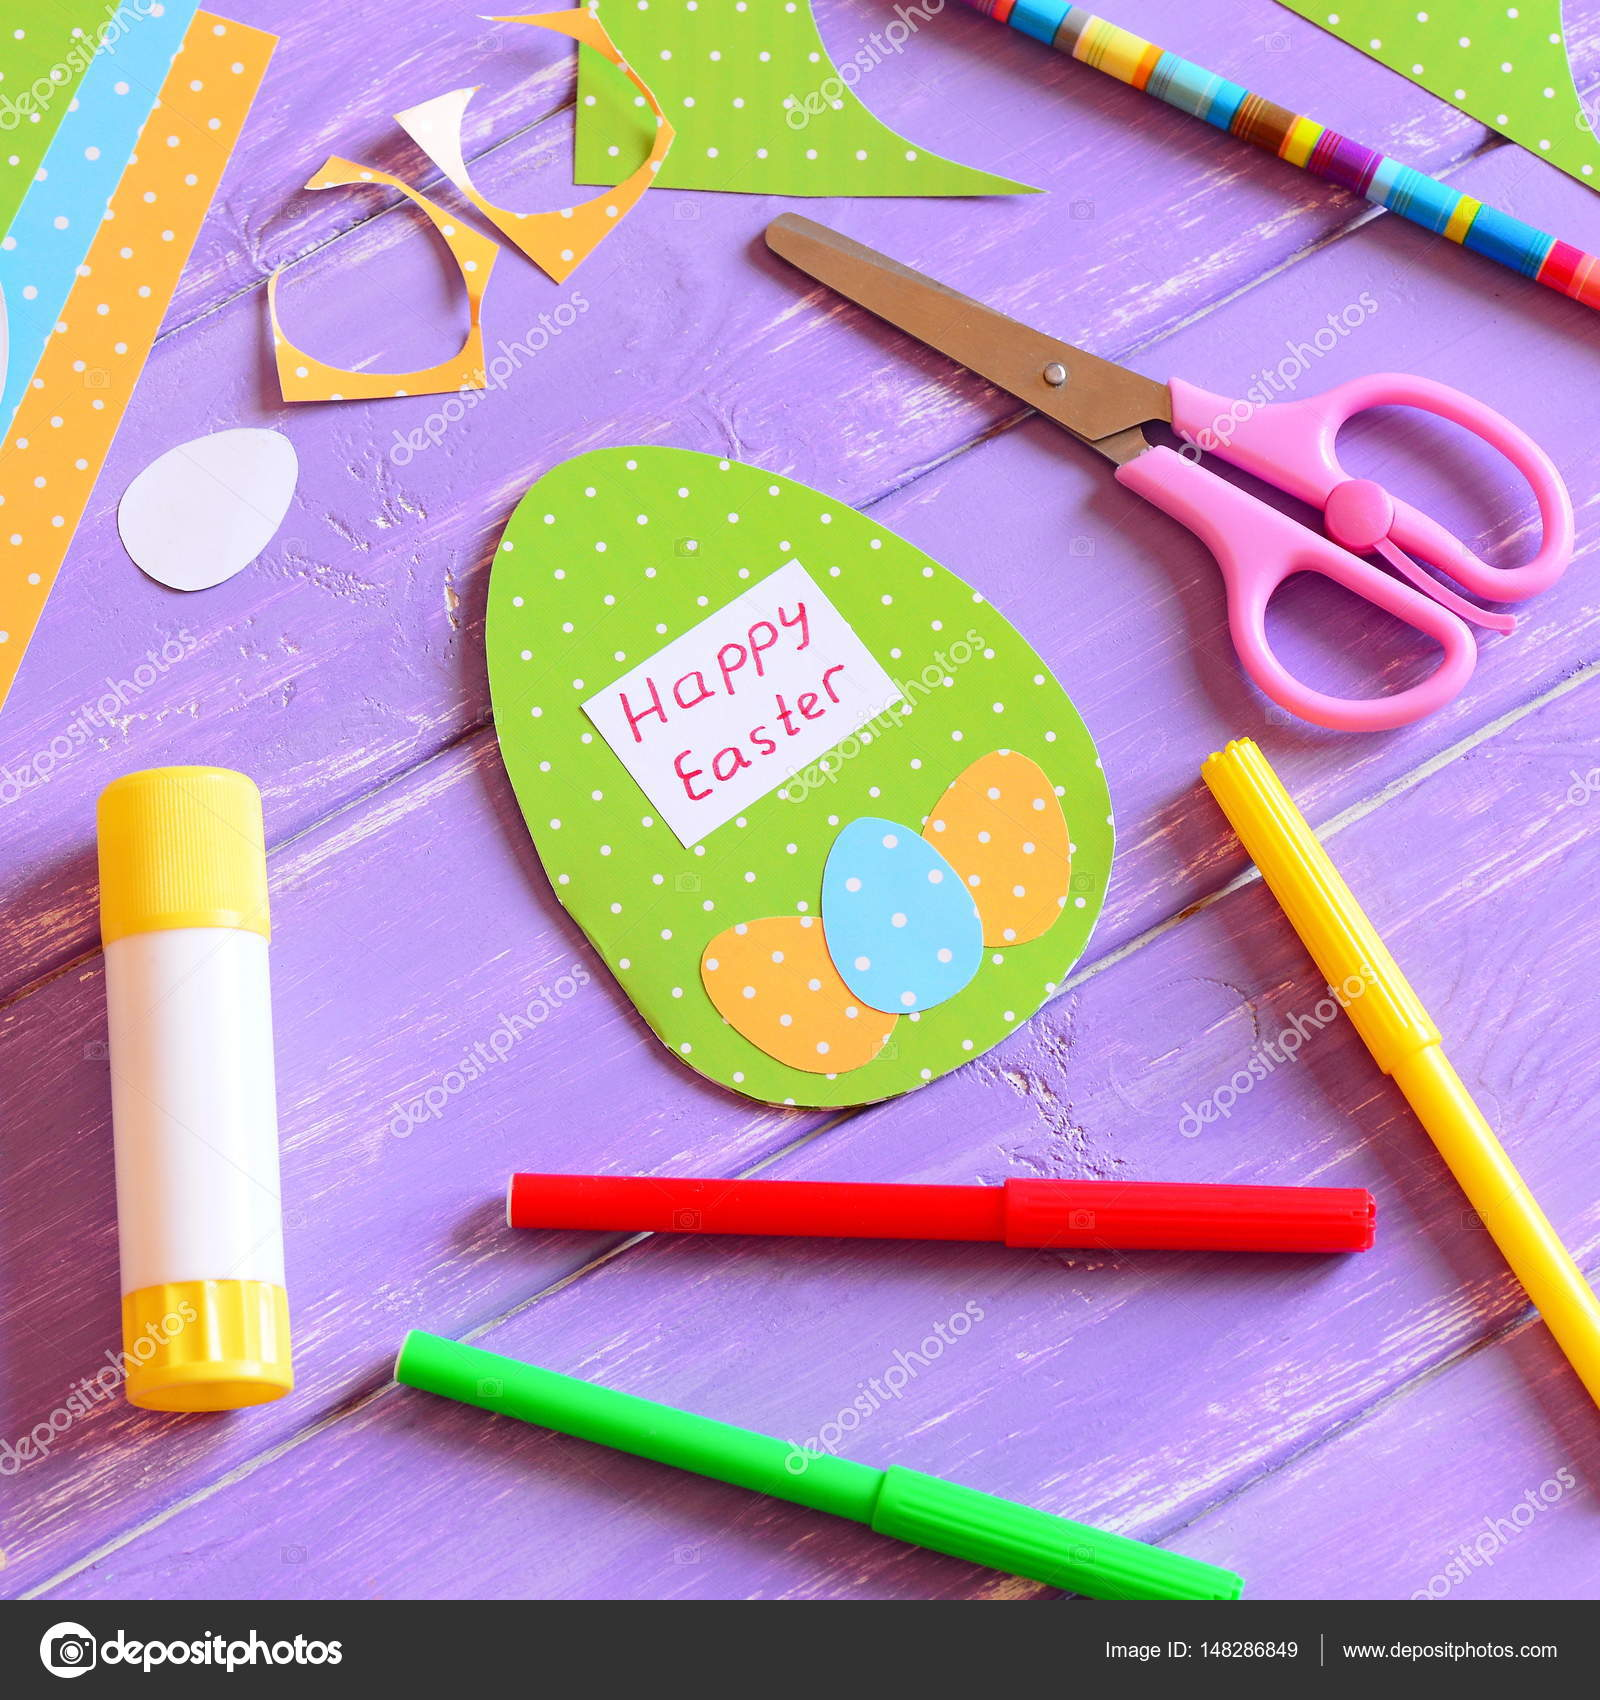 Happy easter card in egg shape materials and tools to create easter happy easter card in egg shape materials and tools to create easter paper greeting card m4hsunfo